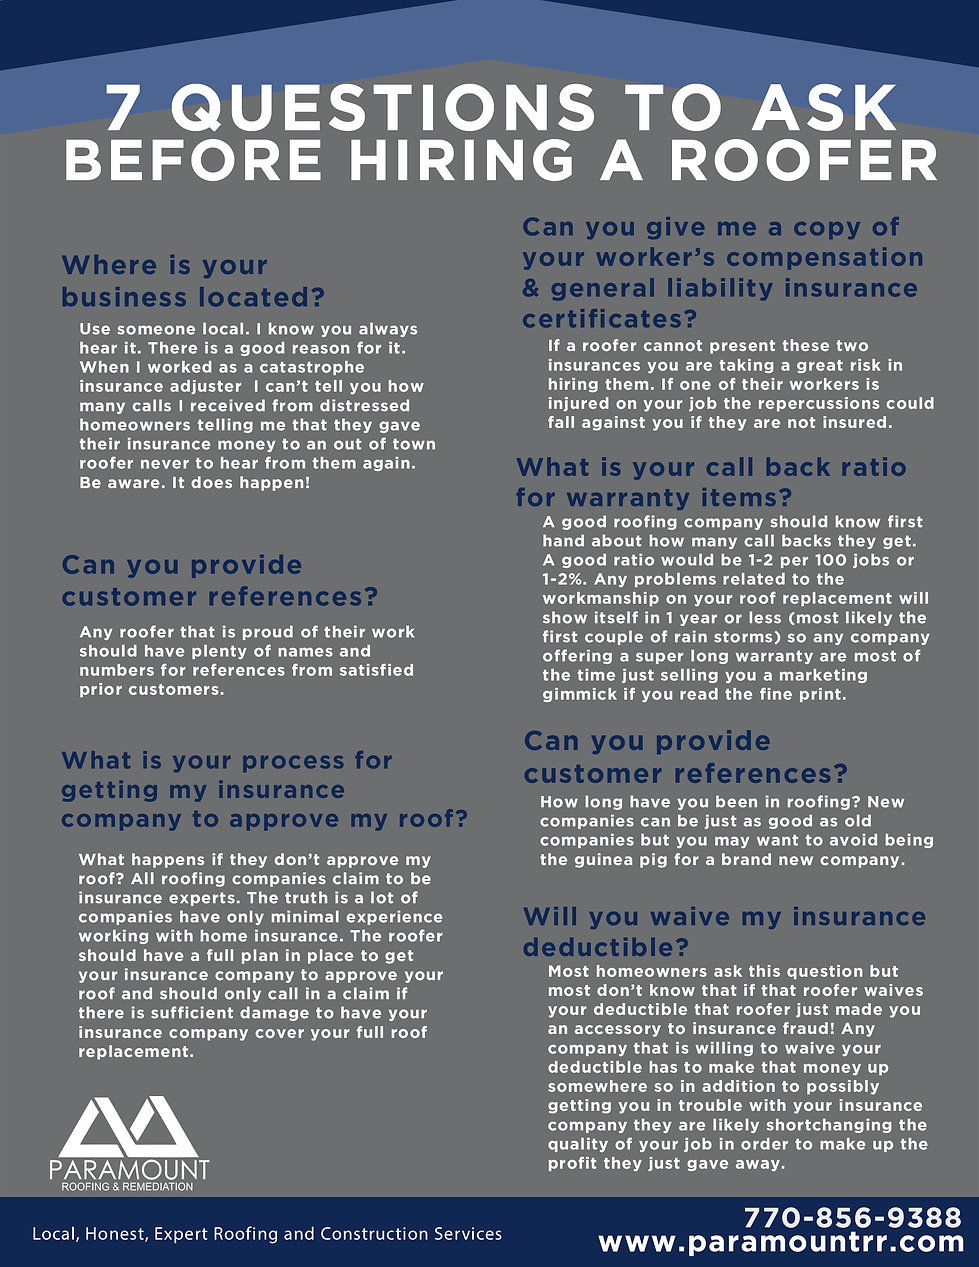 7-Questions-To-Ask-Your-Roofer-B.jpg